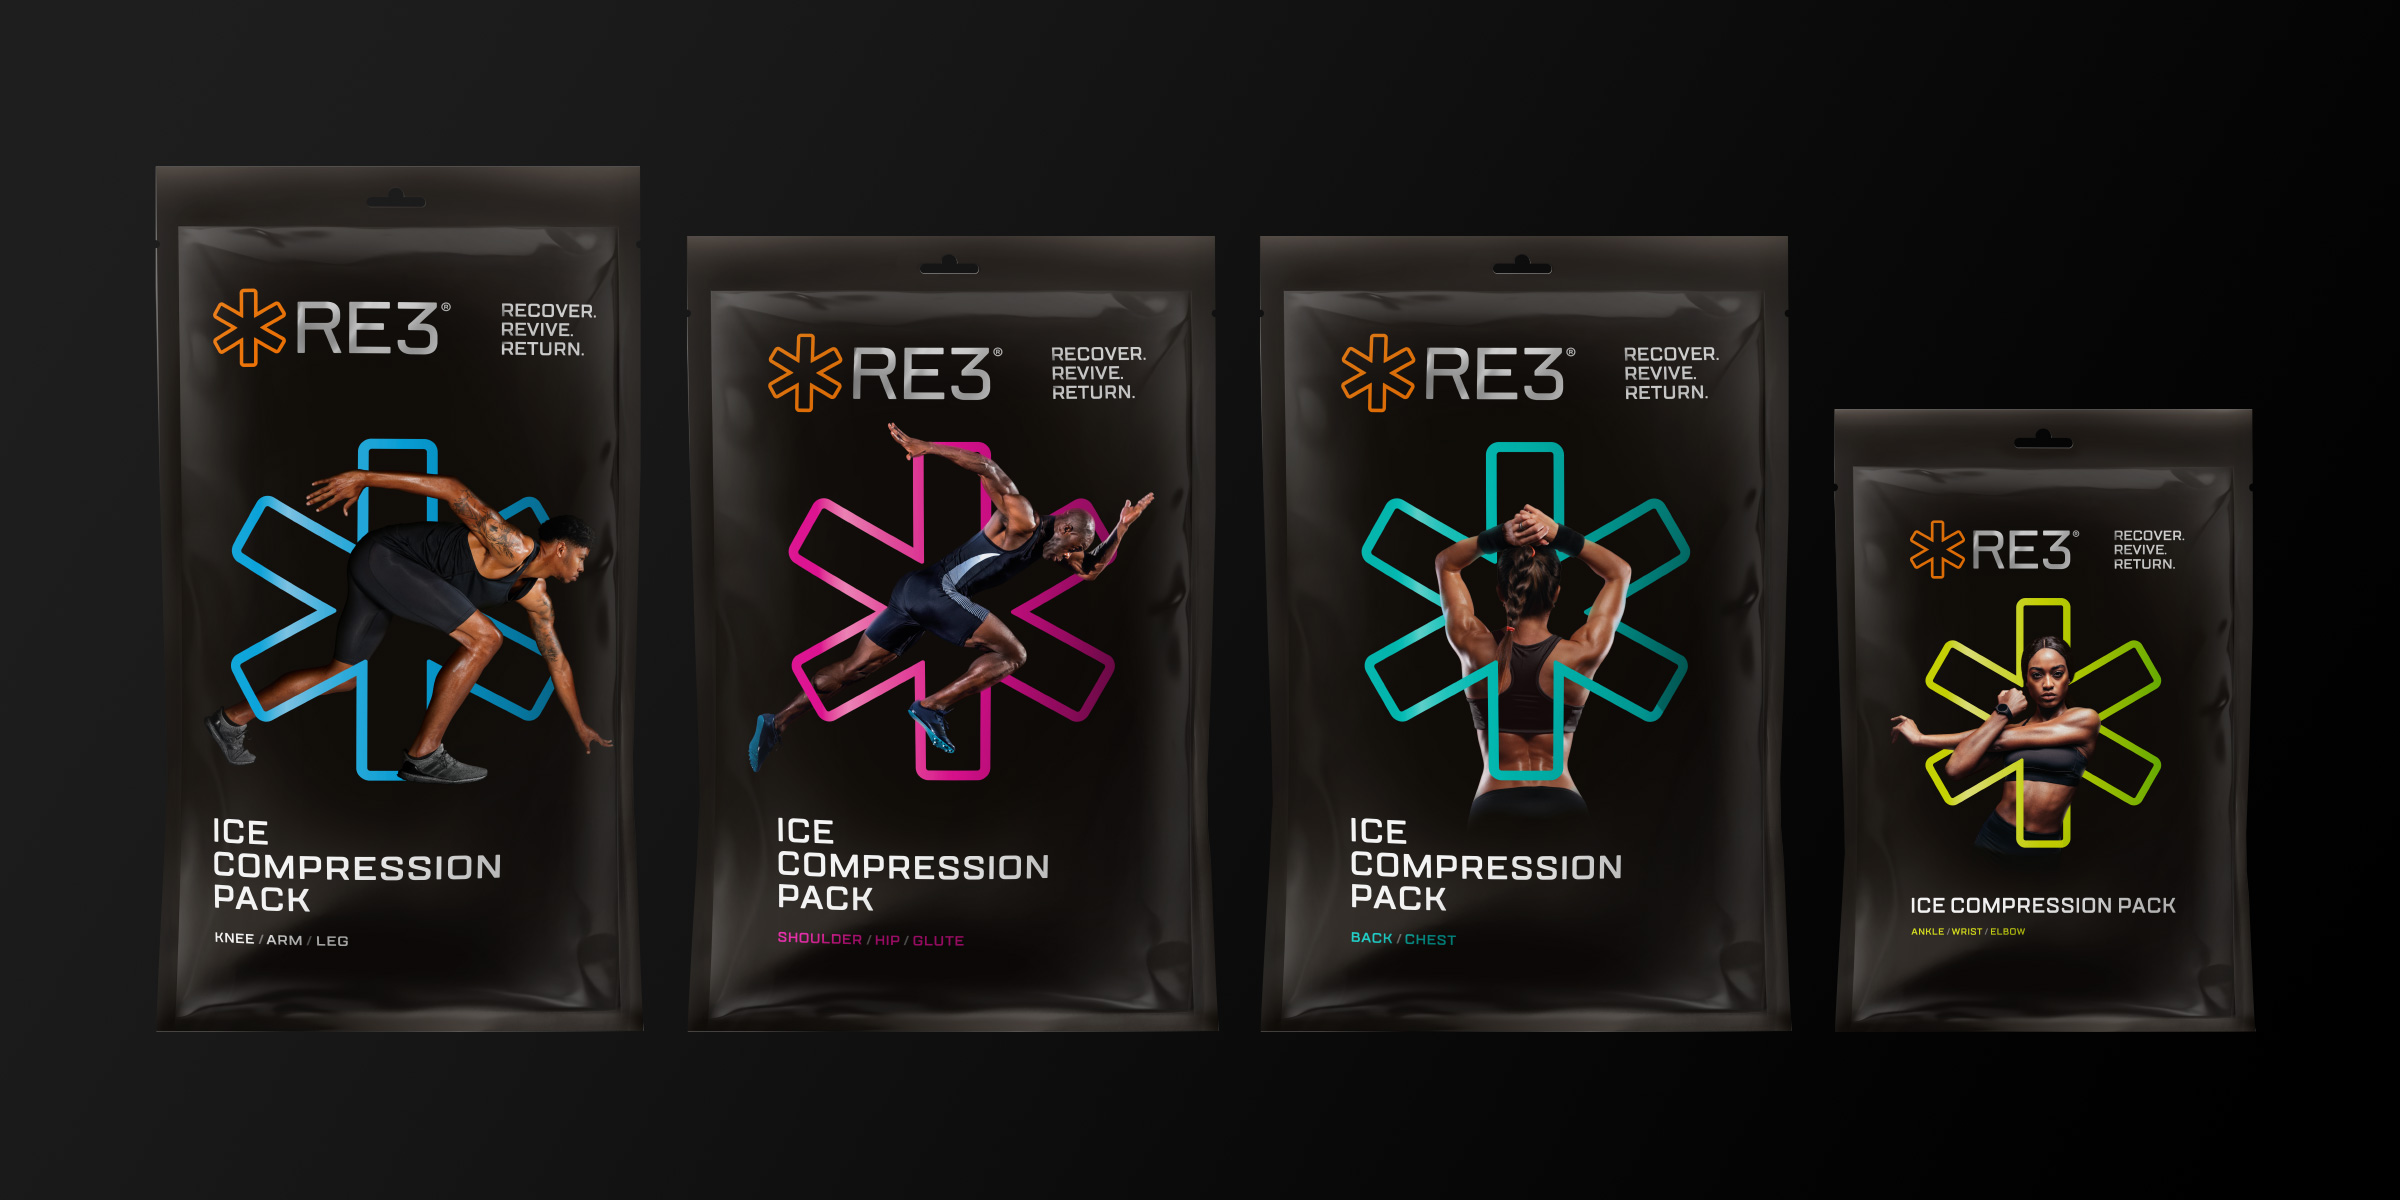 RE3 Ice Compression Pack Davidson Branding We Grow Retail Brand Identity Sport Packaging Pack Range